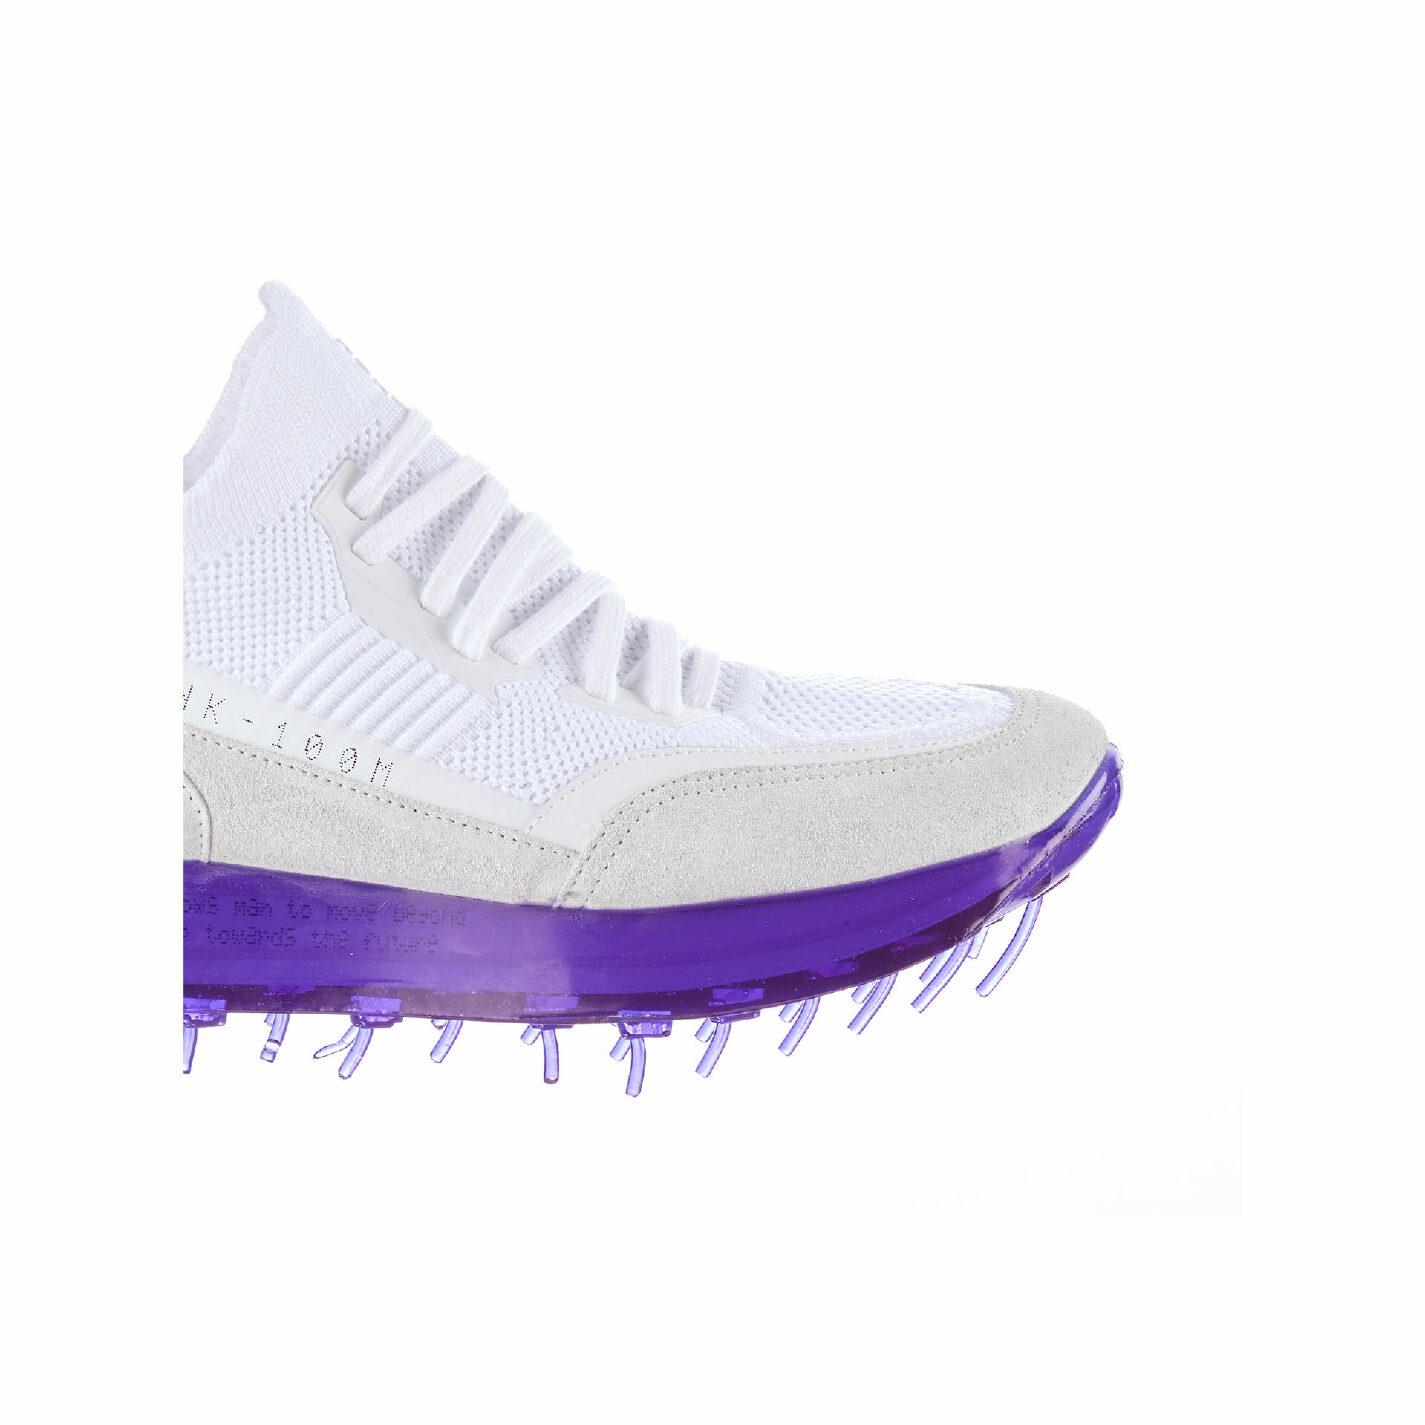 Women's SNK-100M trainers in white technical knit fabric with purple sole